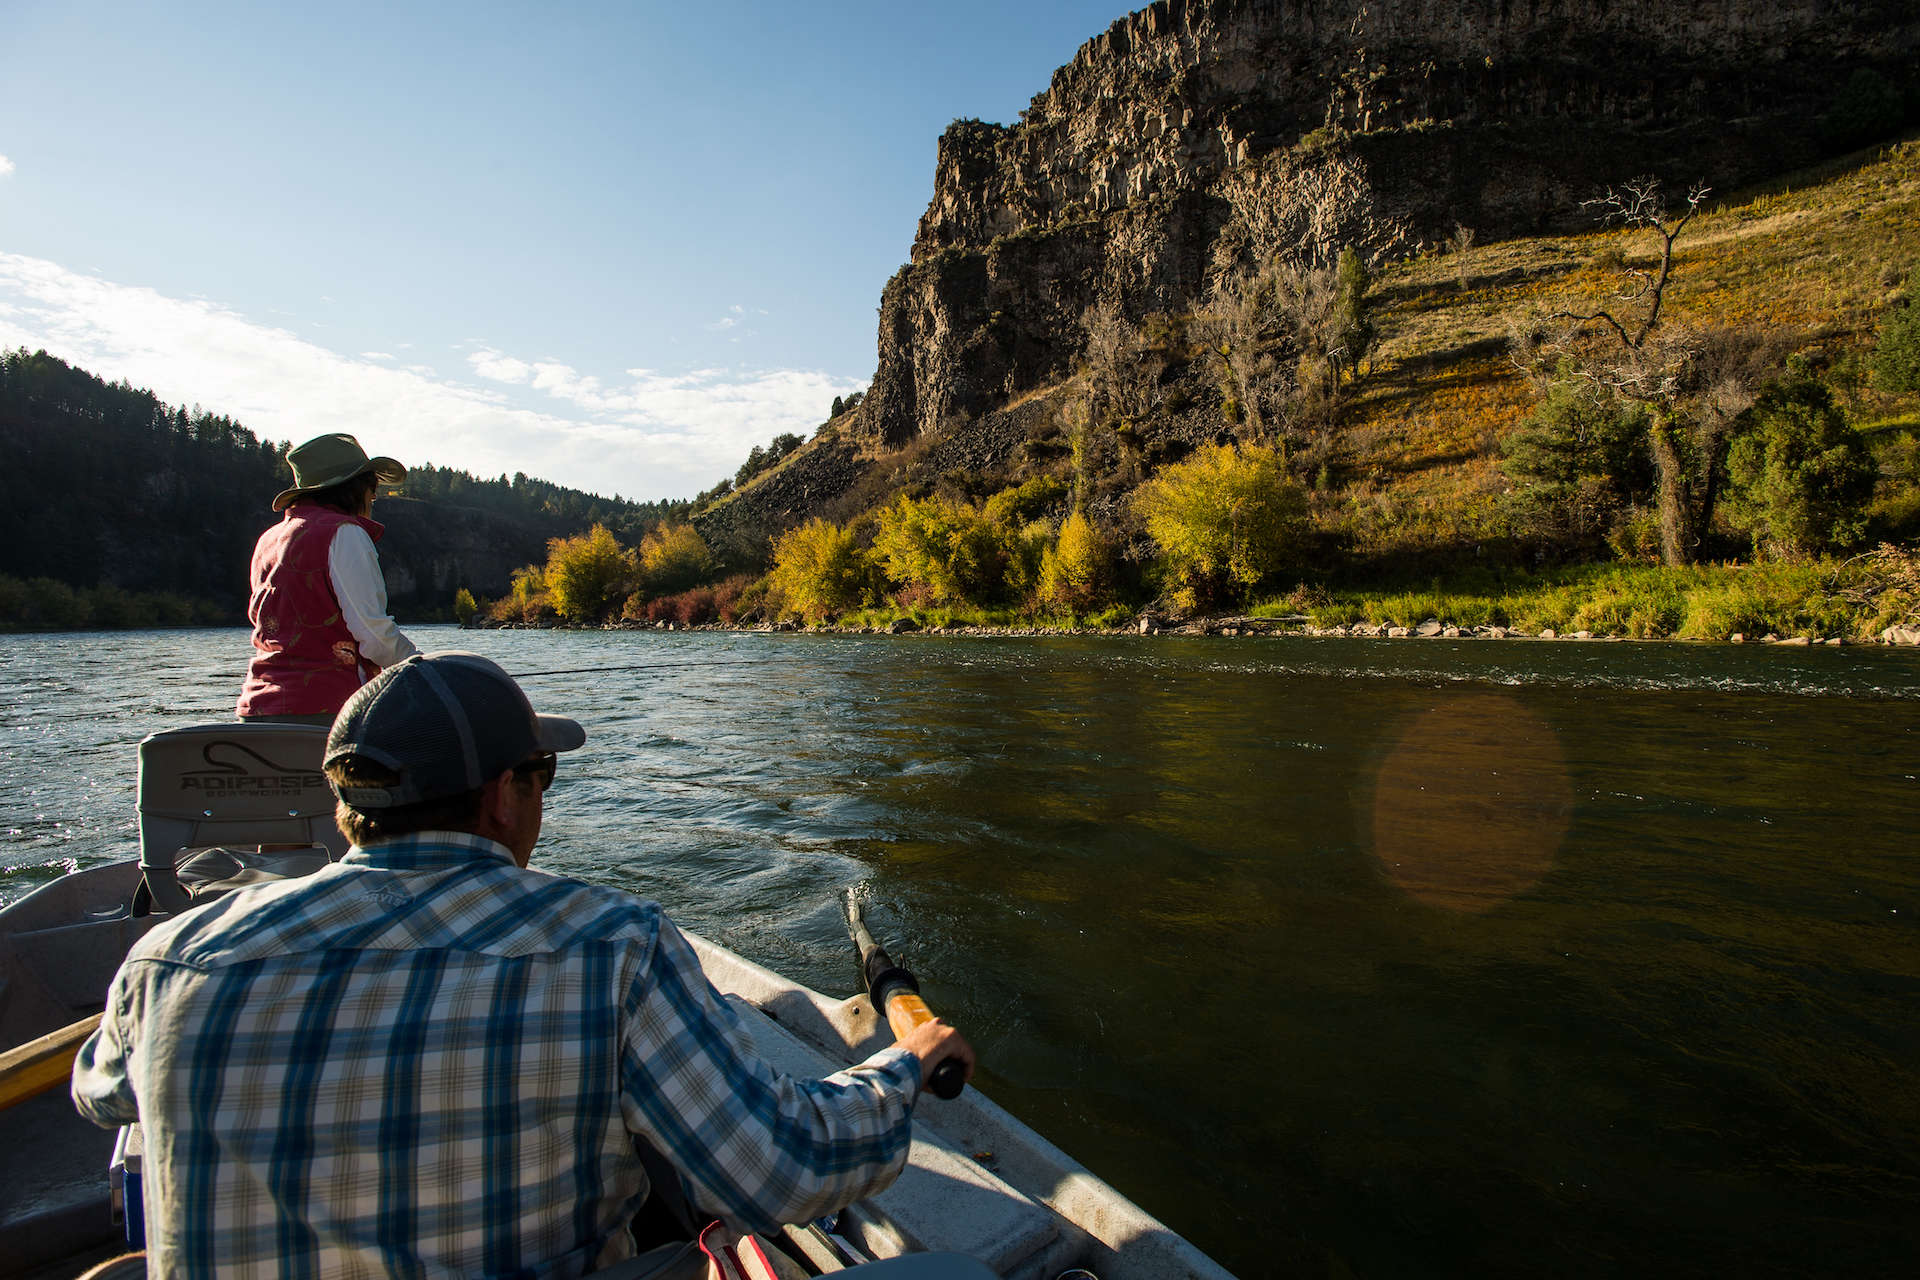 Three rivers ranch orvis endorsed fly fishing lodge in idaho for Idaho fly fishing lodges